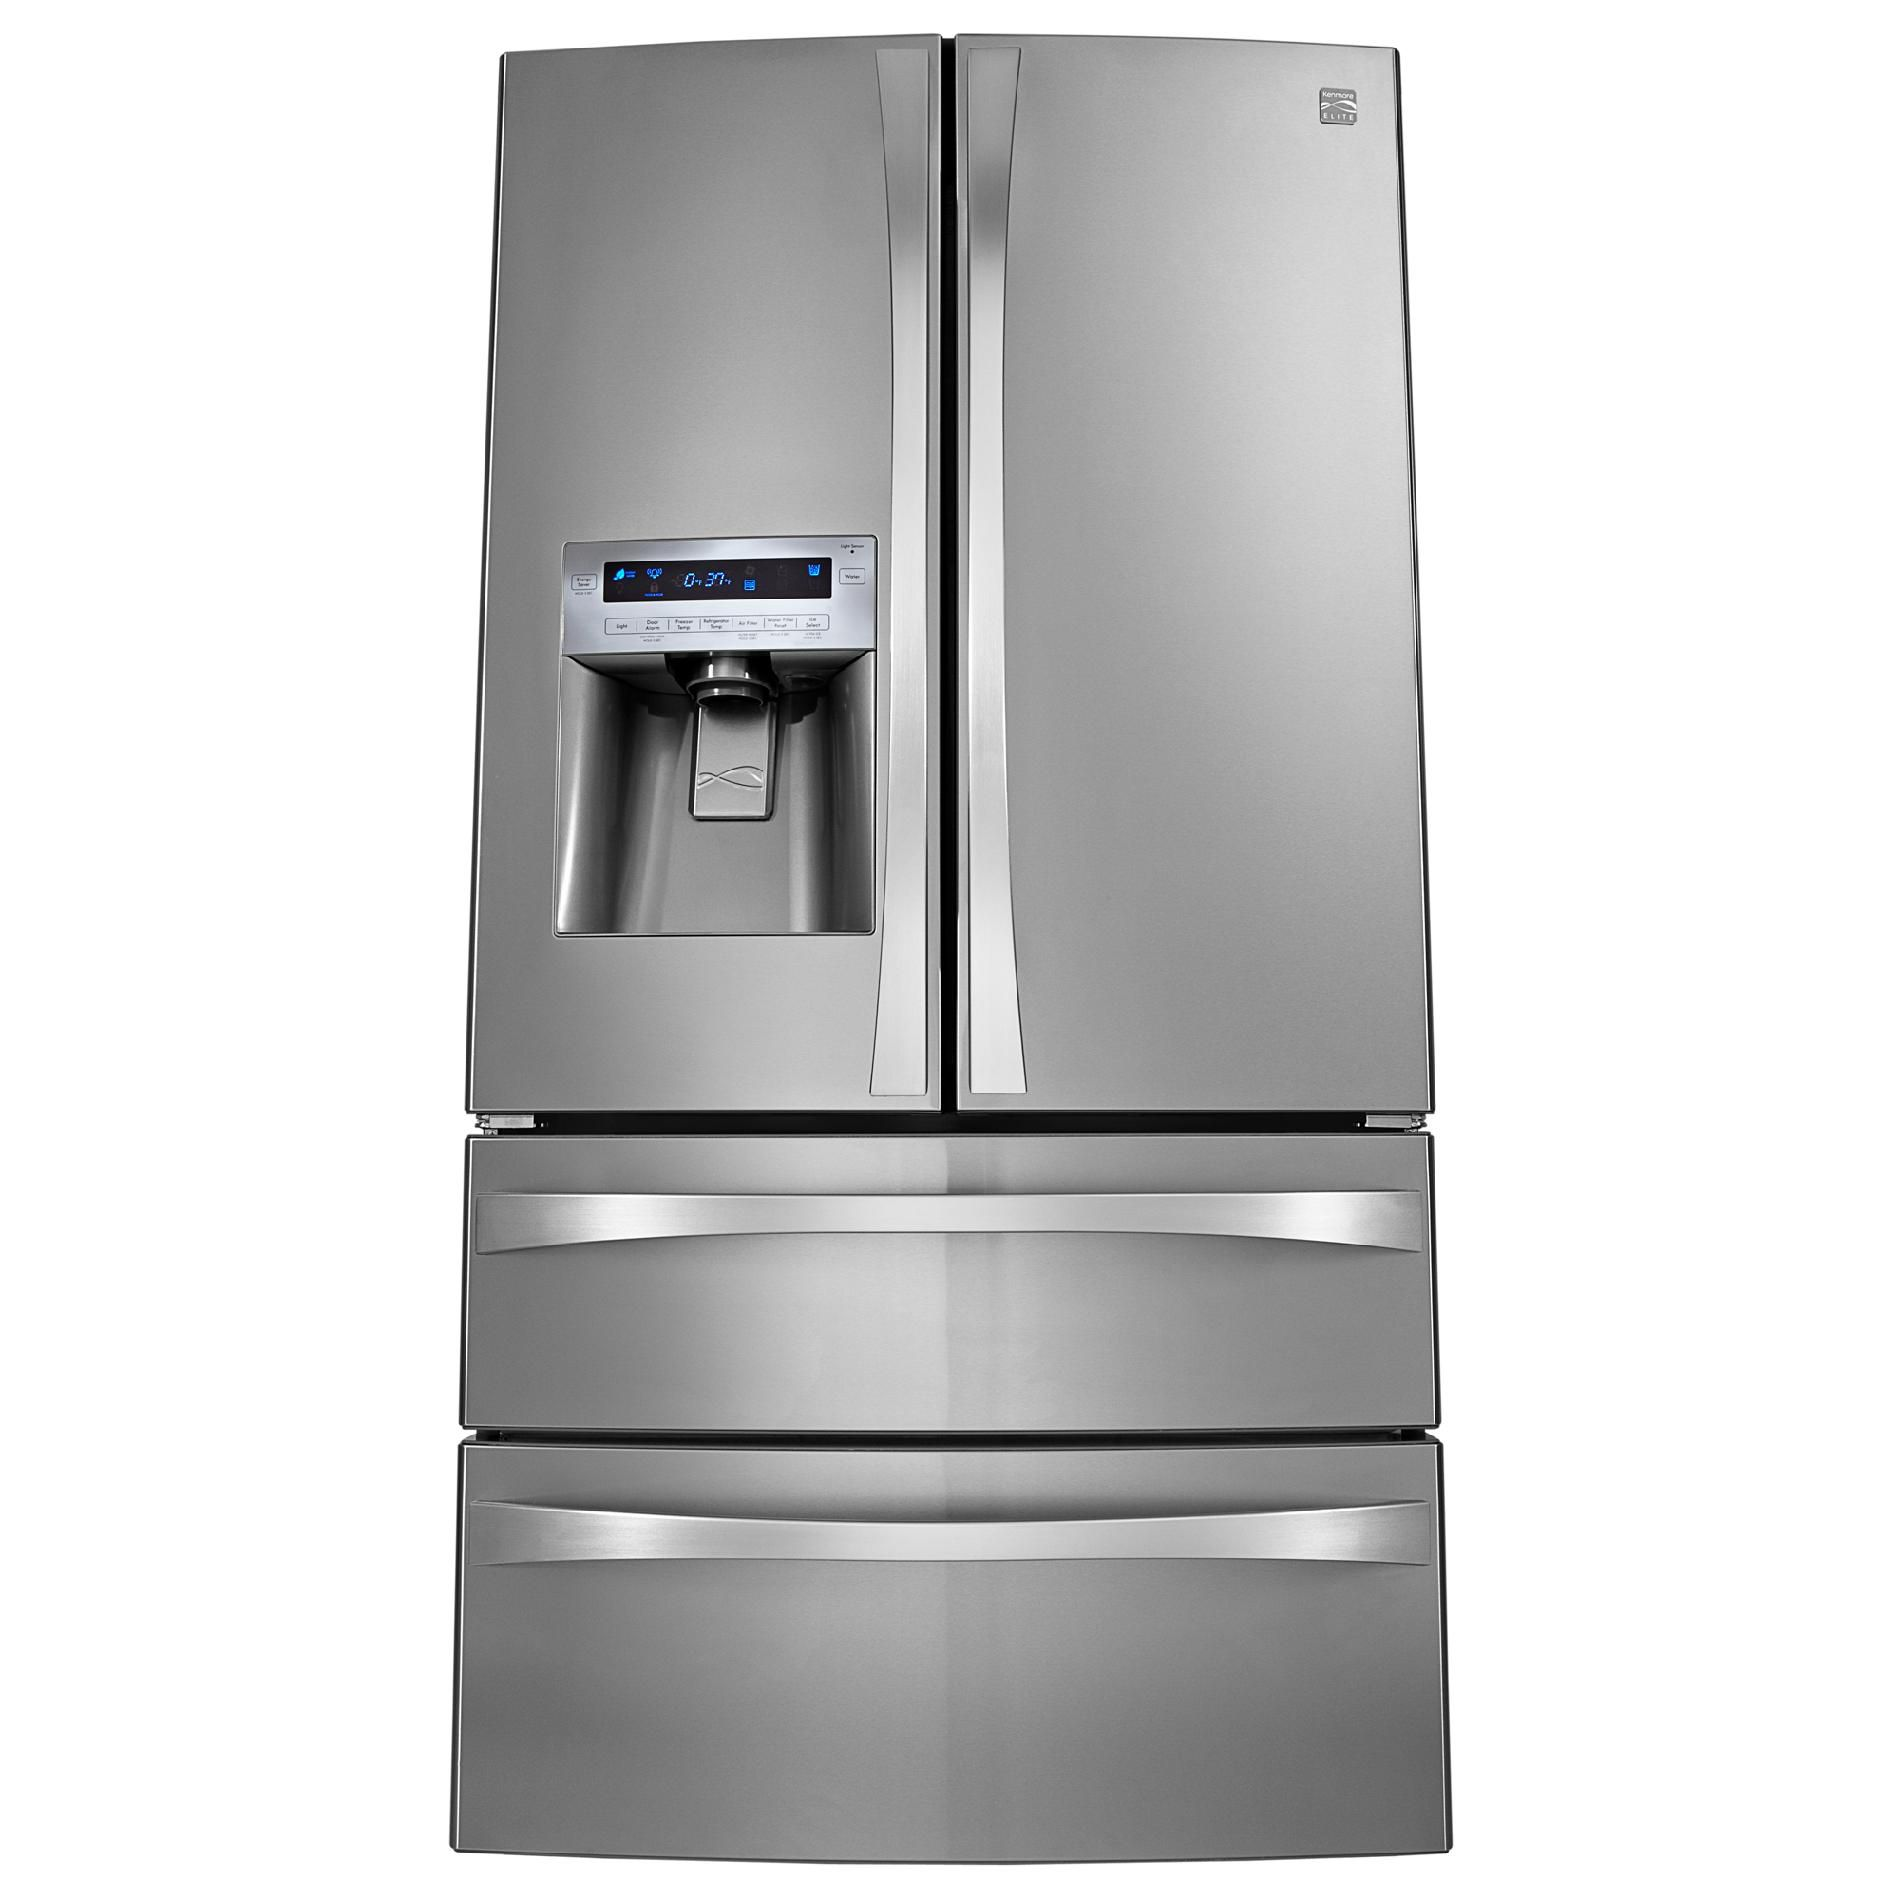 Kenmore Elite 31.0 cu. ft. Dual-Freezer French-Door Bottom-Freezer Refrigerator - Stainless Steel